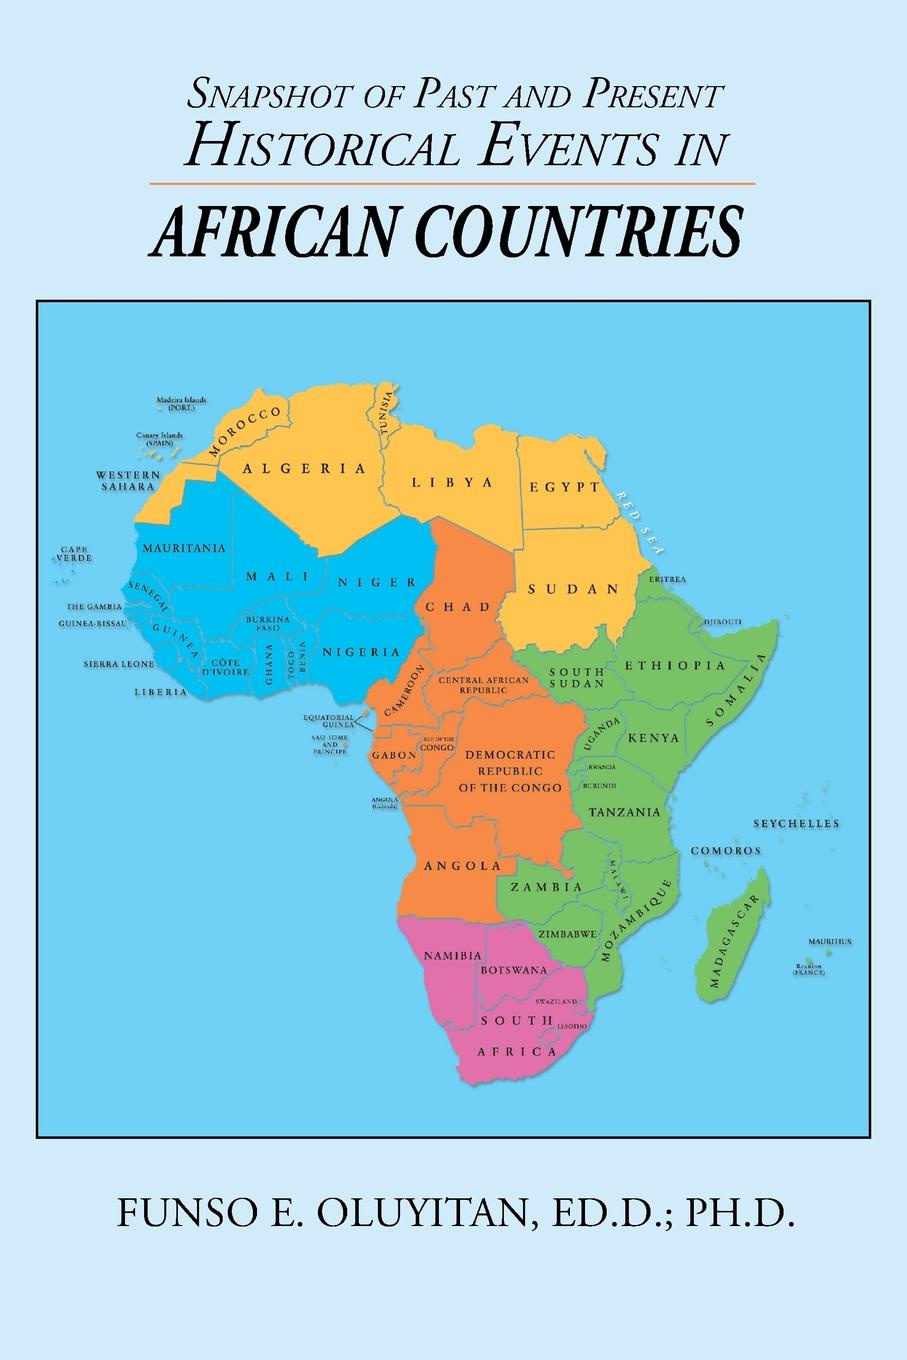 Funso E. Oluyitan Ed.D. Ph.D. Snapshot of Past and Present Historical Events in African Countries